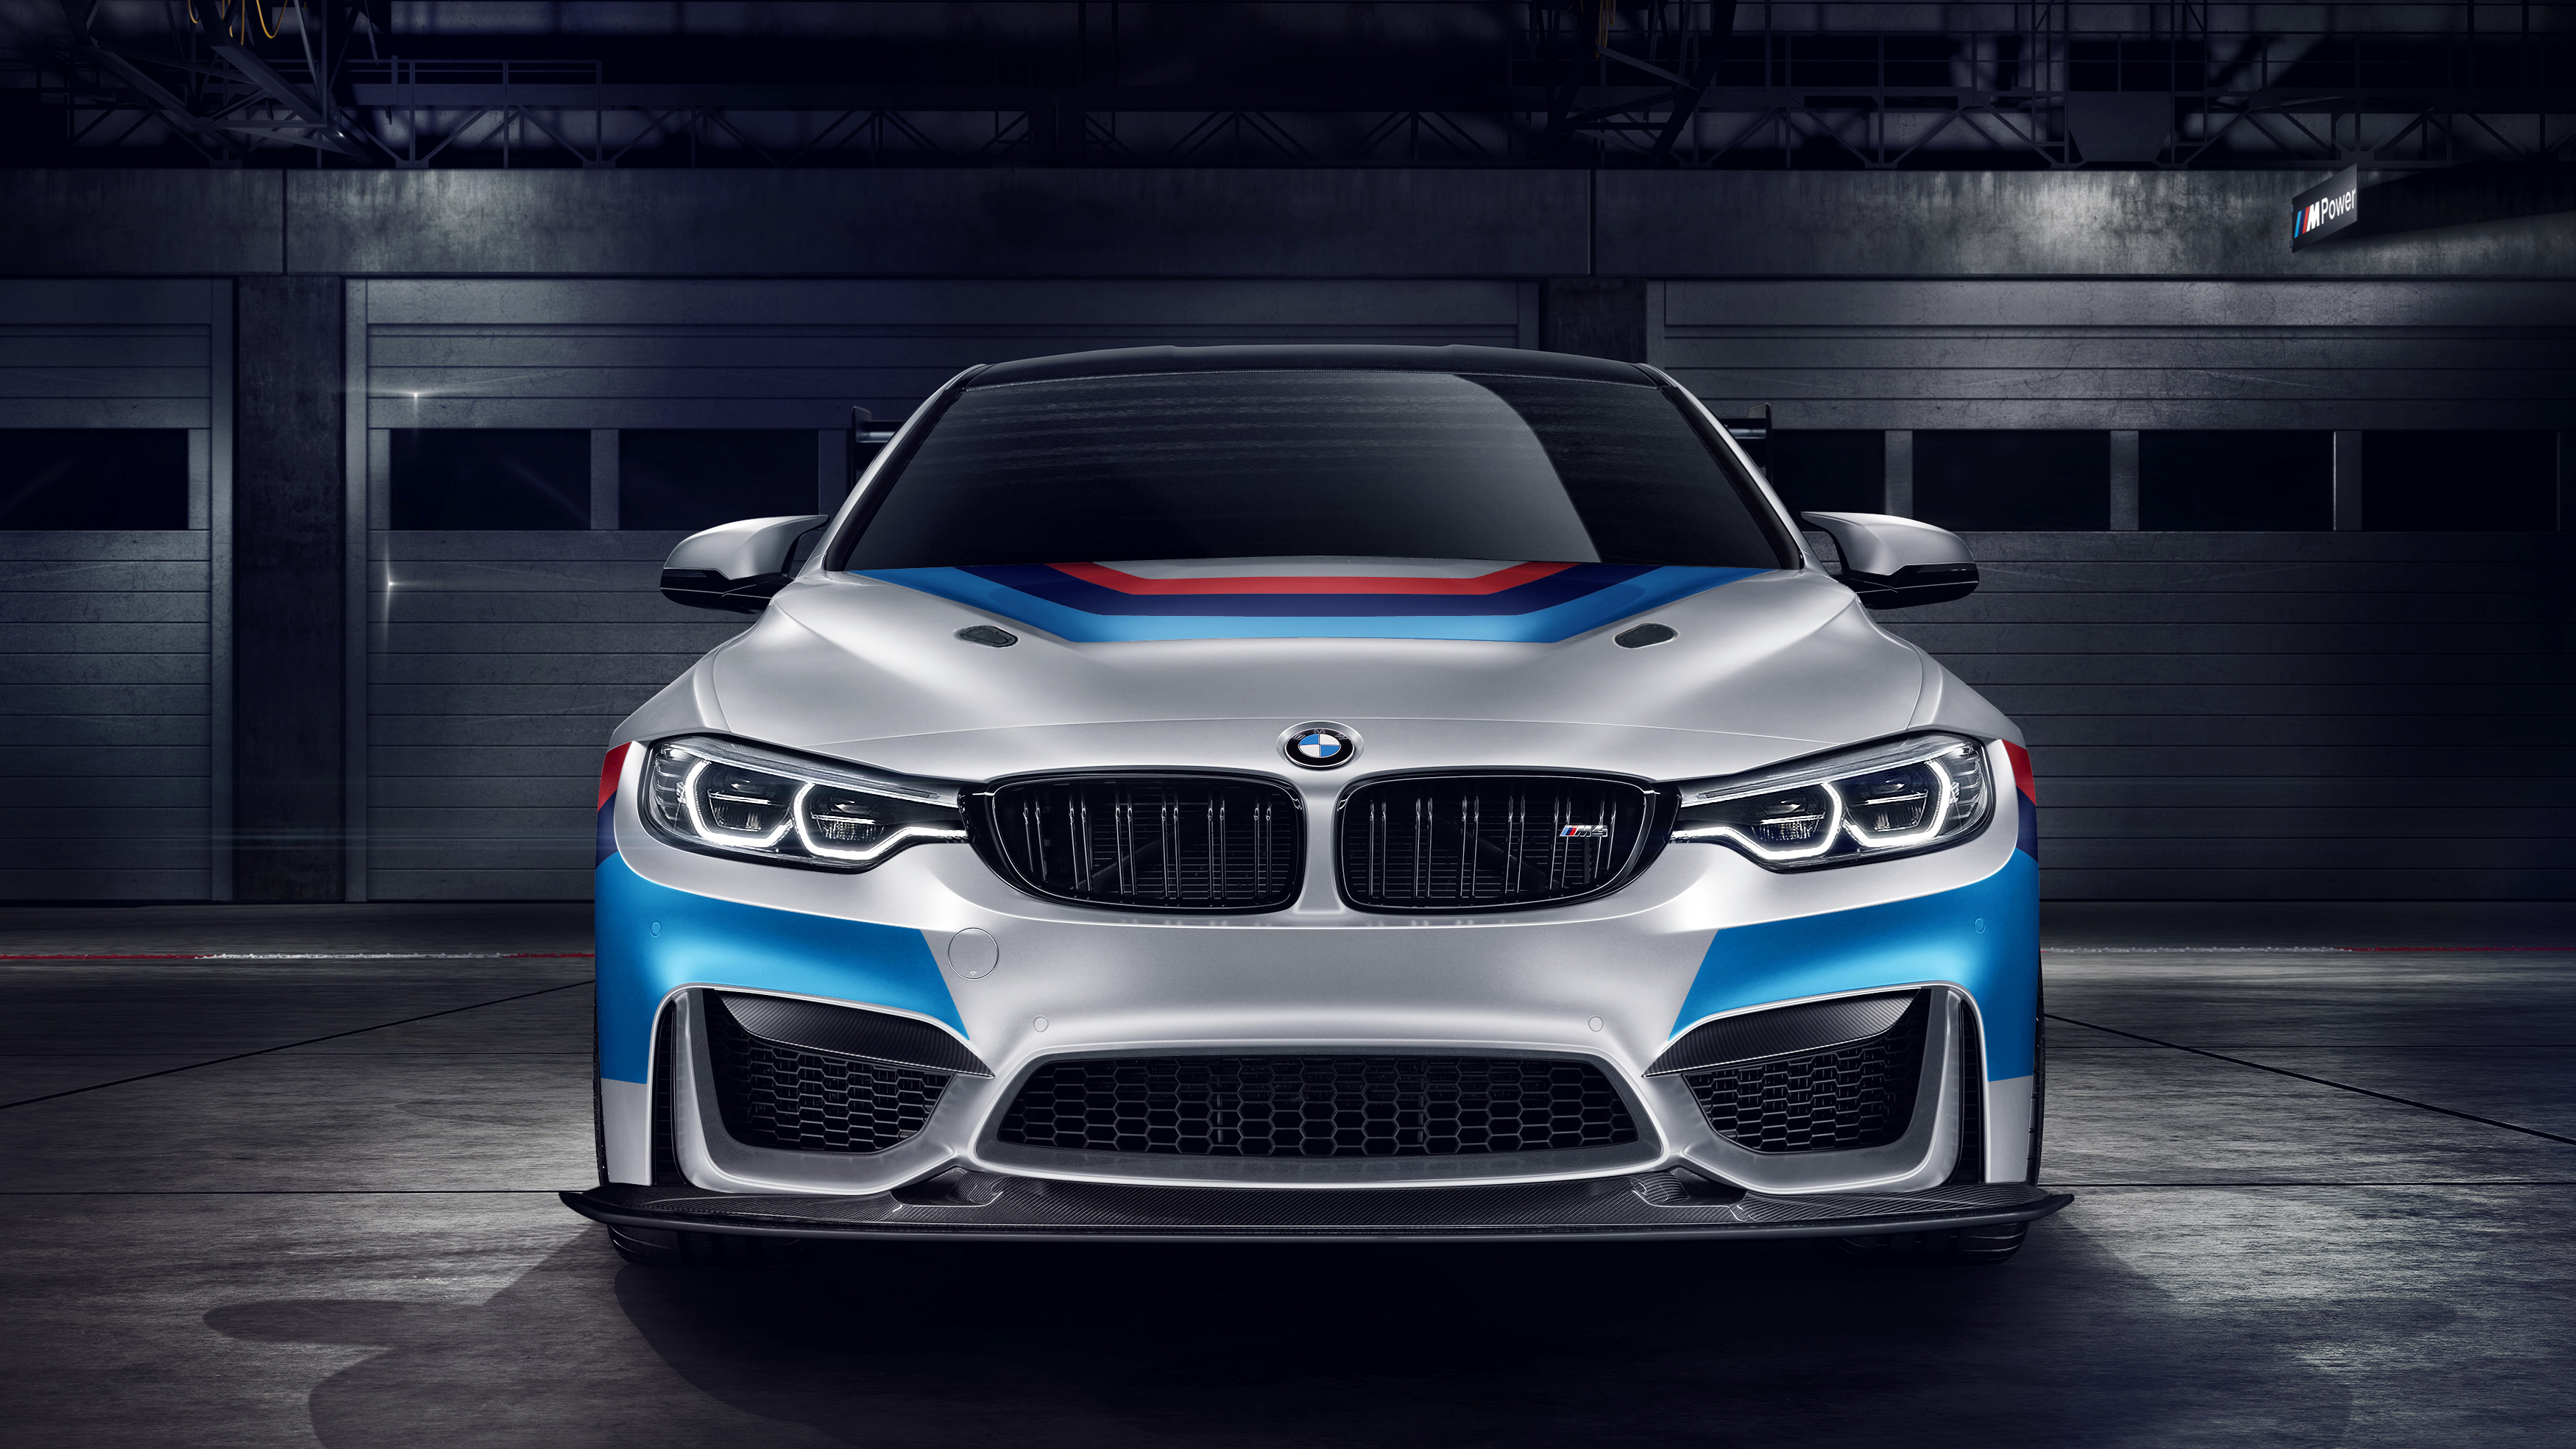 Bmw M4 Wallpaper 4k Posted By Samantha Cunningham